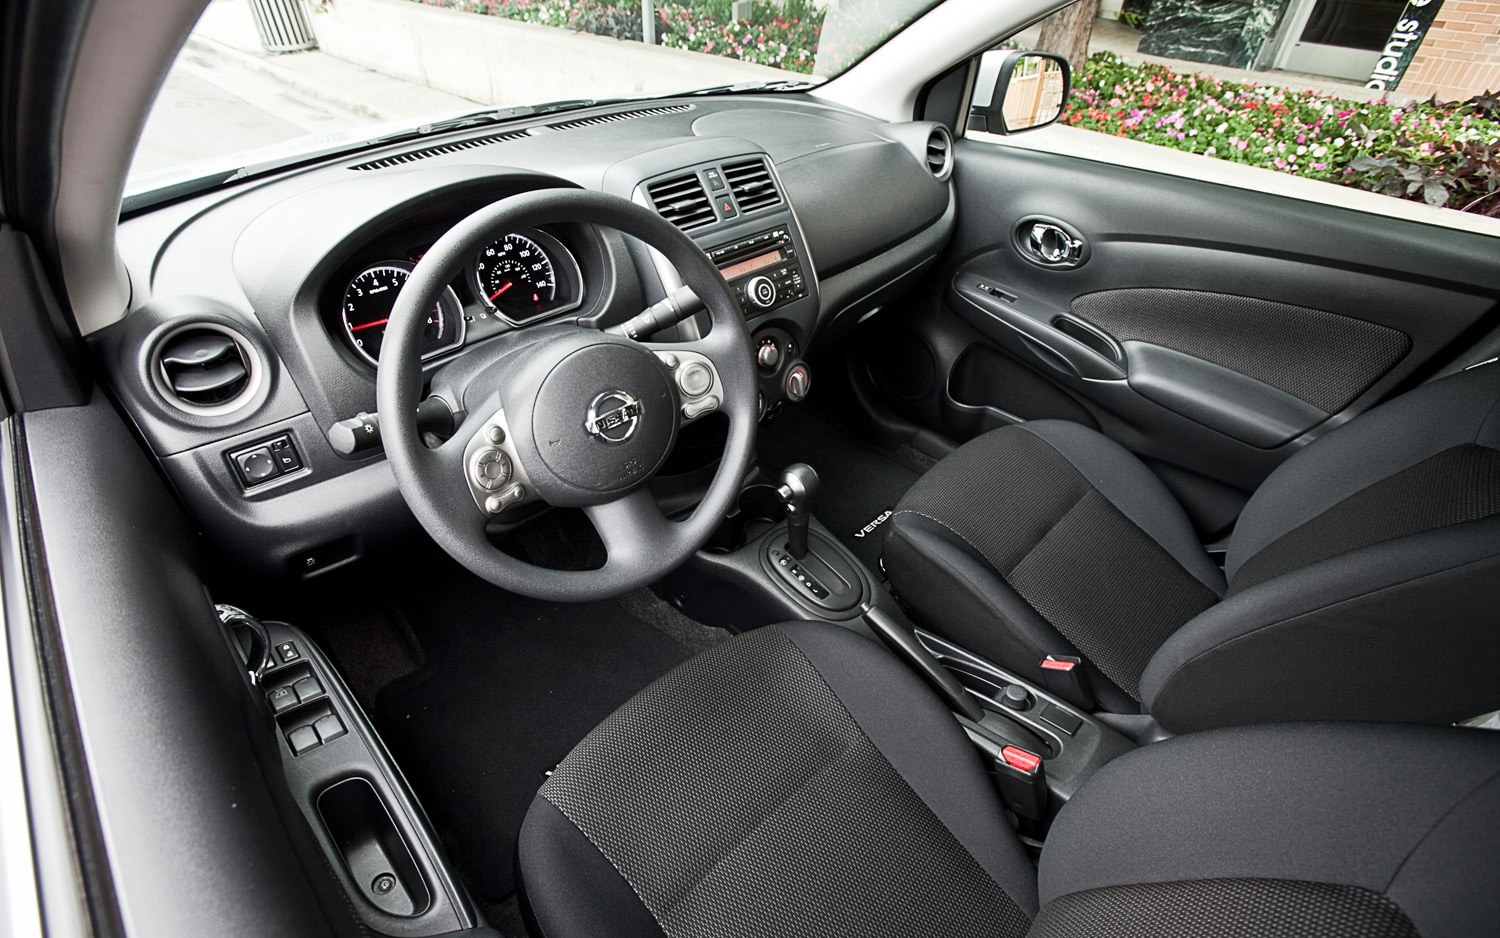 2012 nissan altima sedan interior images hd cars wallpaper 2012 nissan versa sedan sl editors notebook automobile magazine look vanachro images vanachro Choice Image